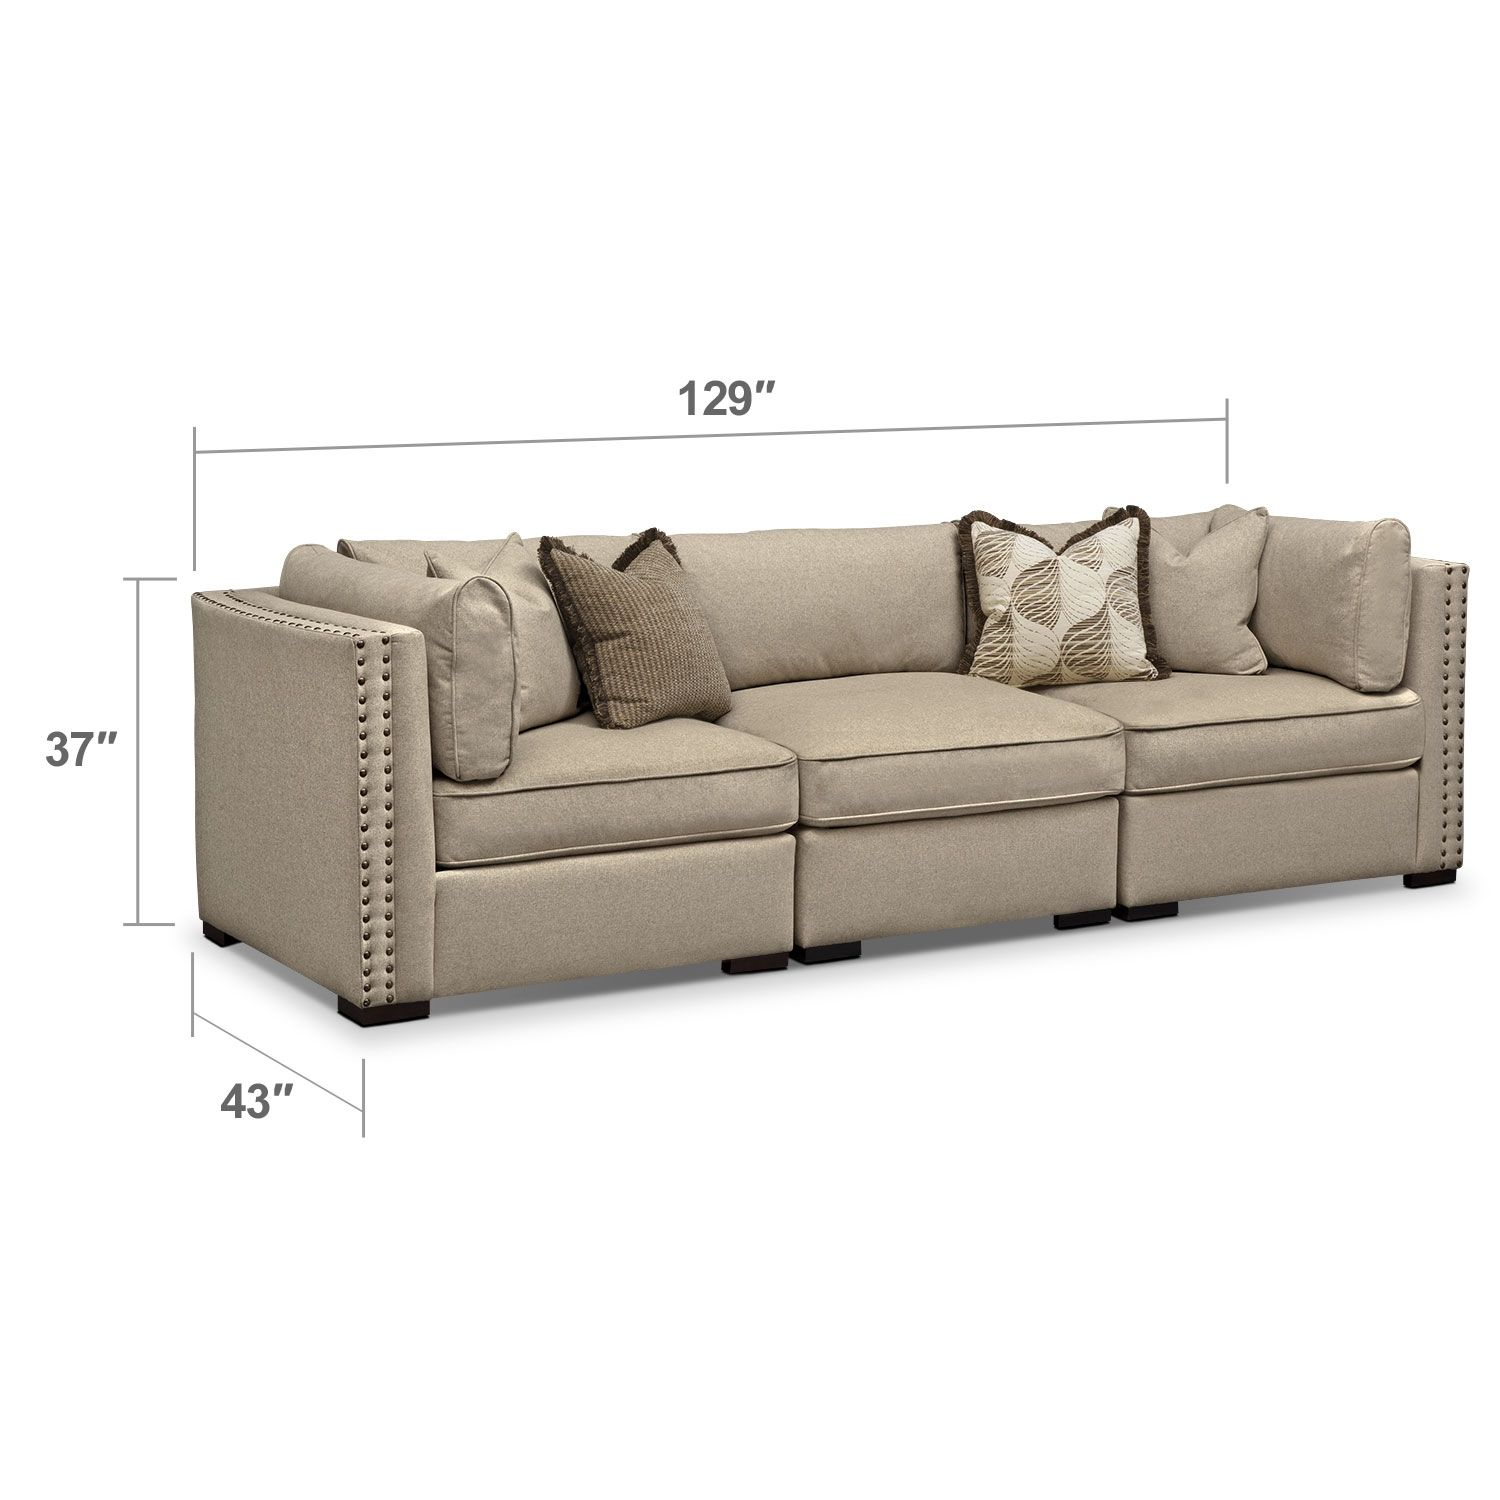 sectional gray cordelle with piece and room set sectionals collection city right living today product was the facing collections value cocktail chaise furniture ottoman